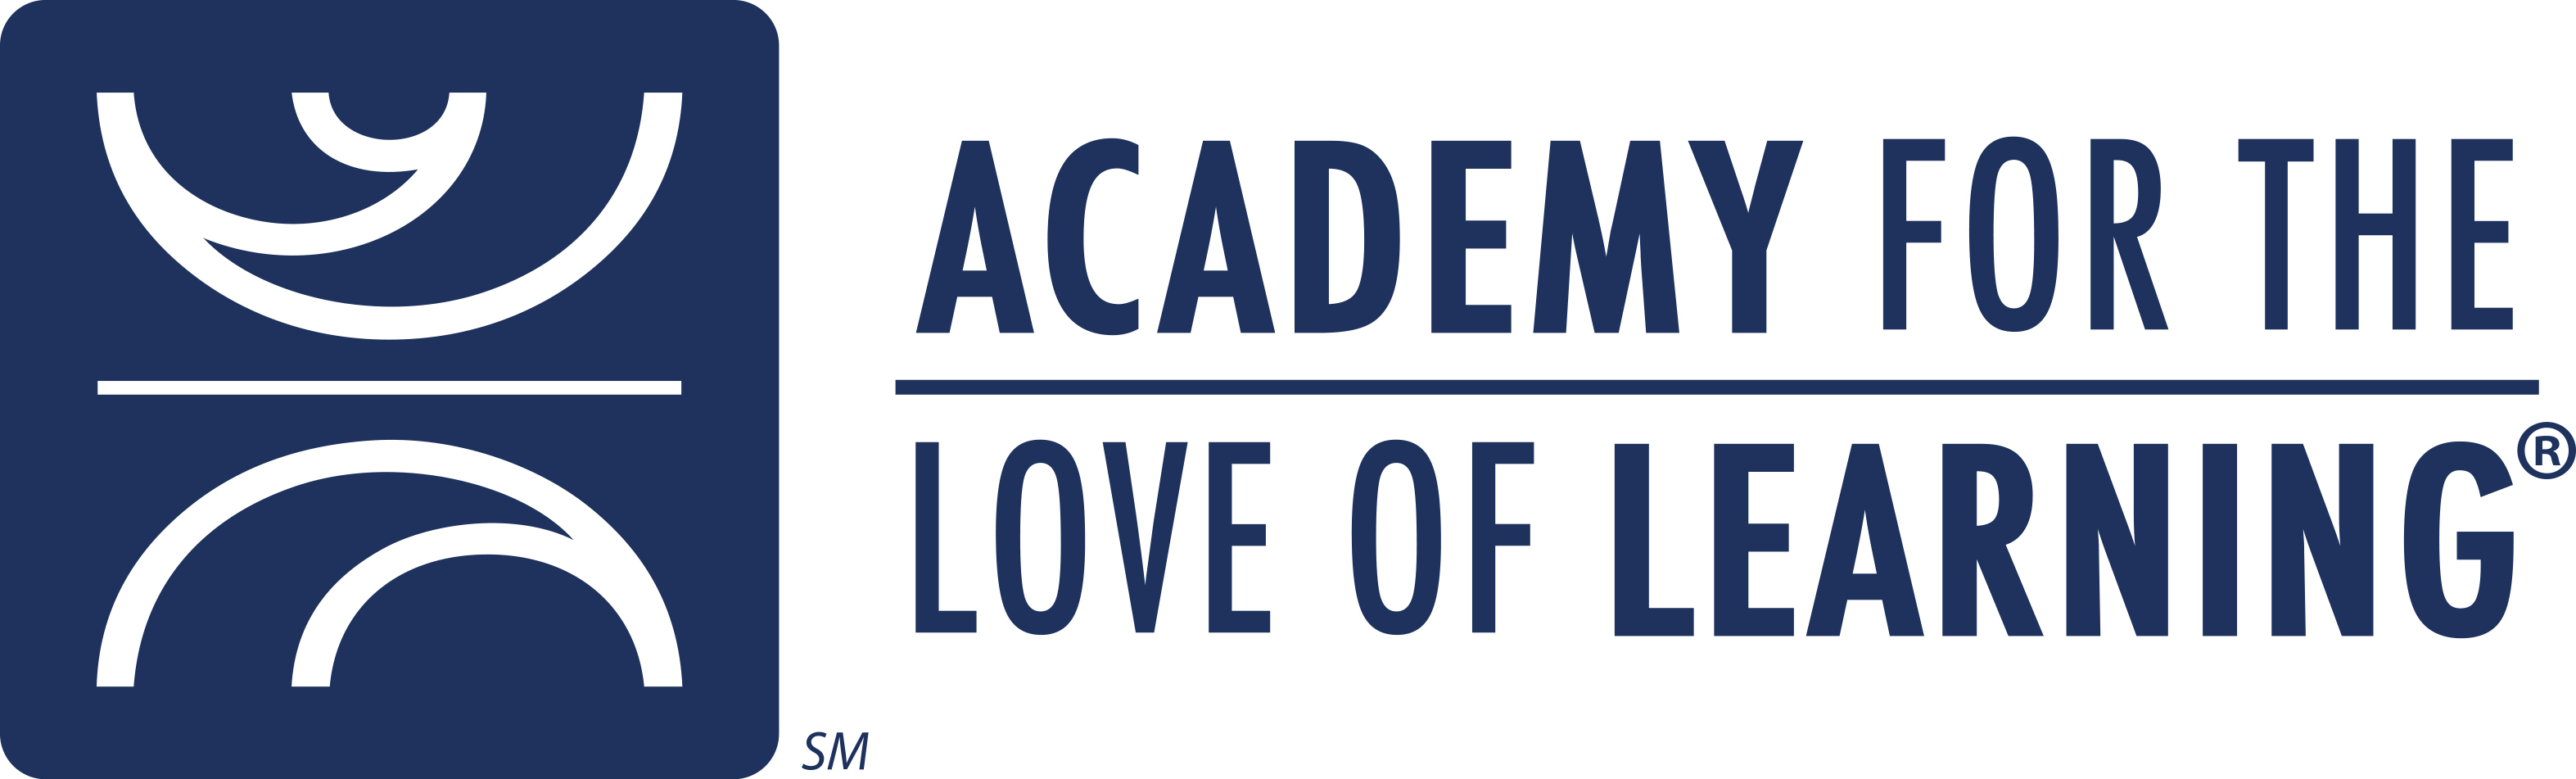 Academy for the Love of Learning